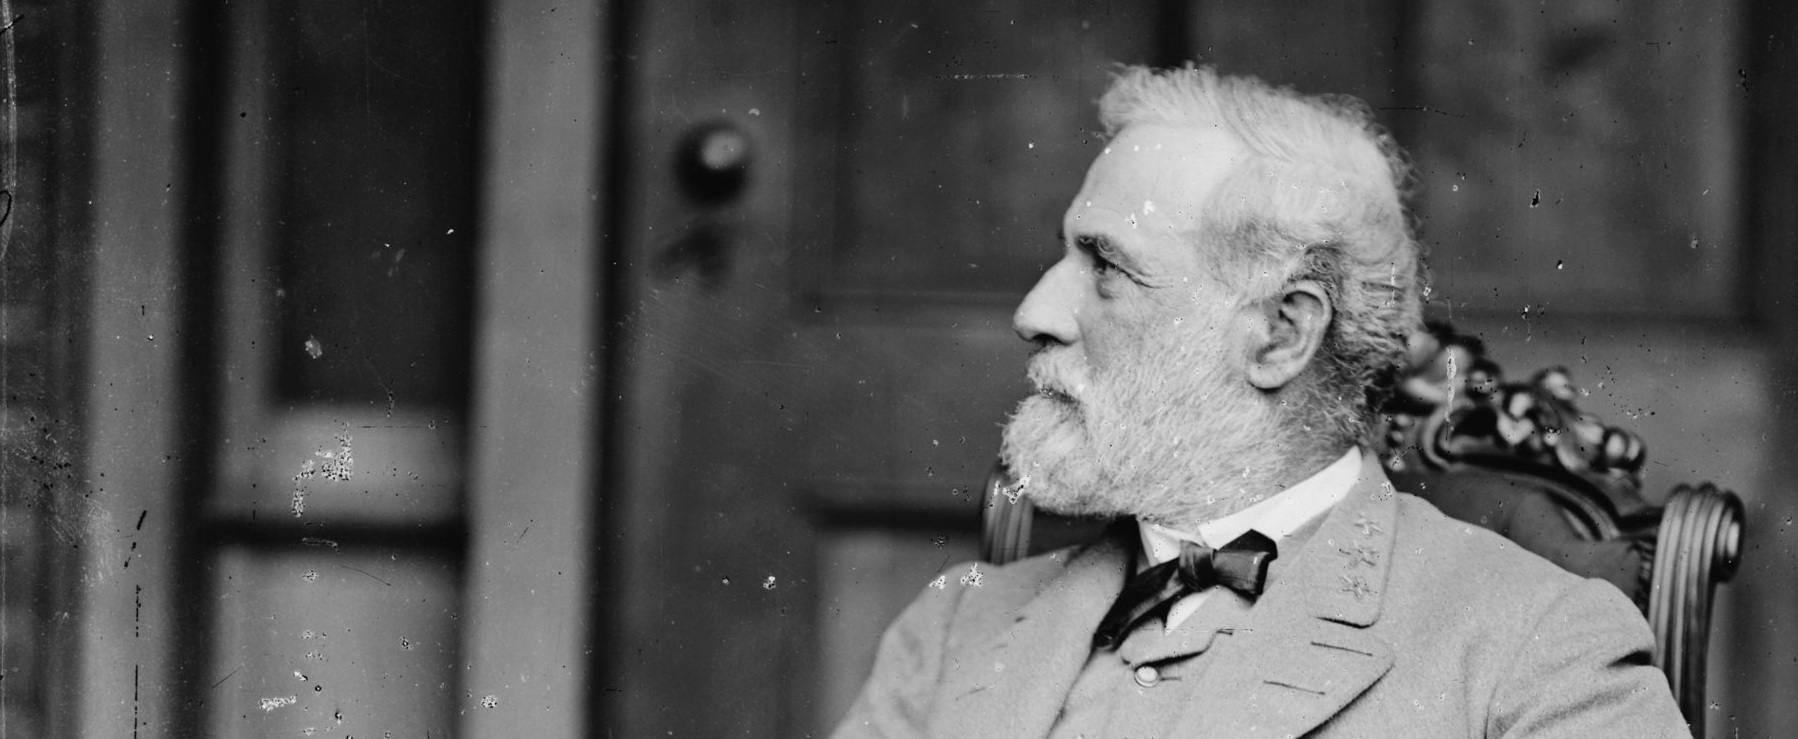 Robert E. Lee (1807-70) shortly after the end of the Civil War in 1865